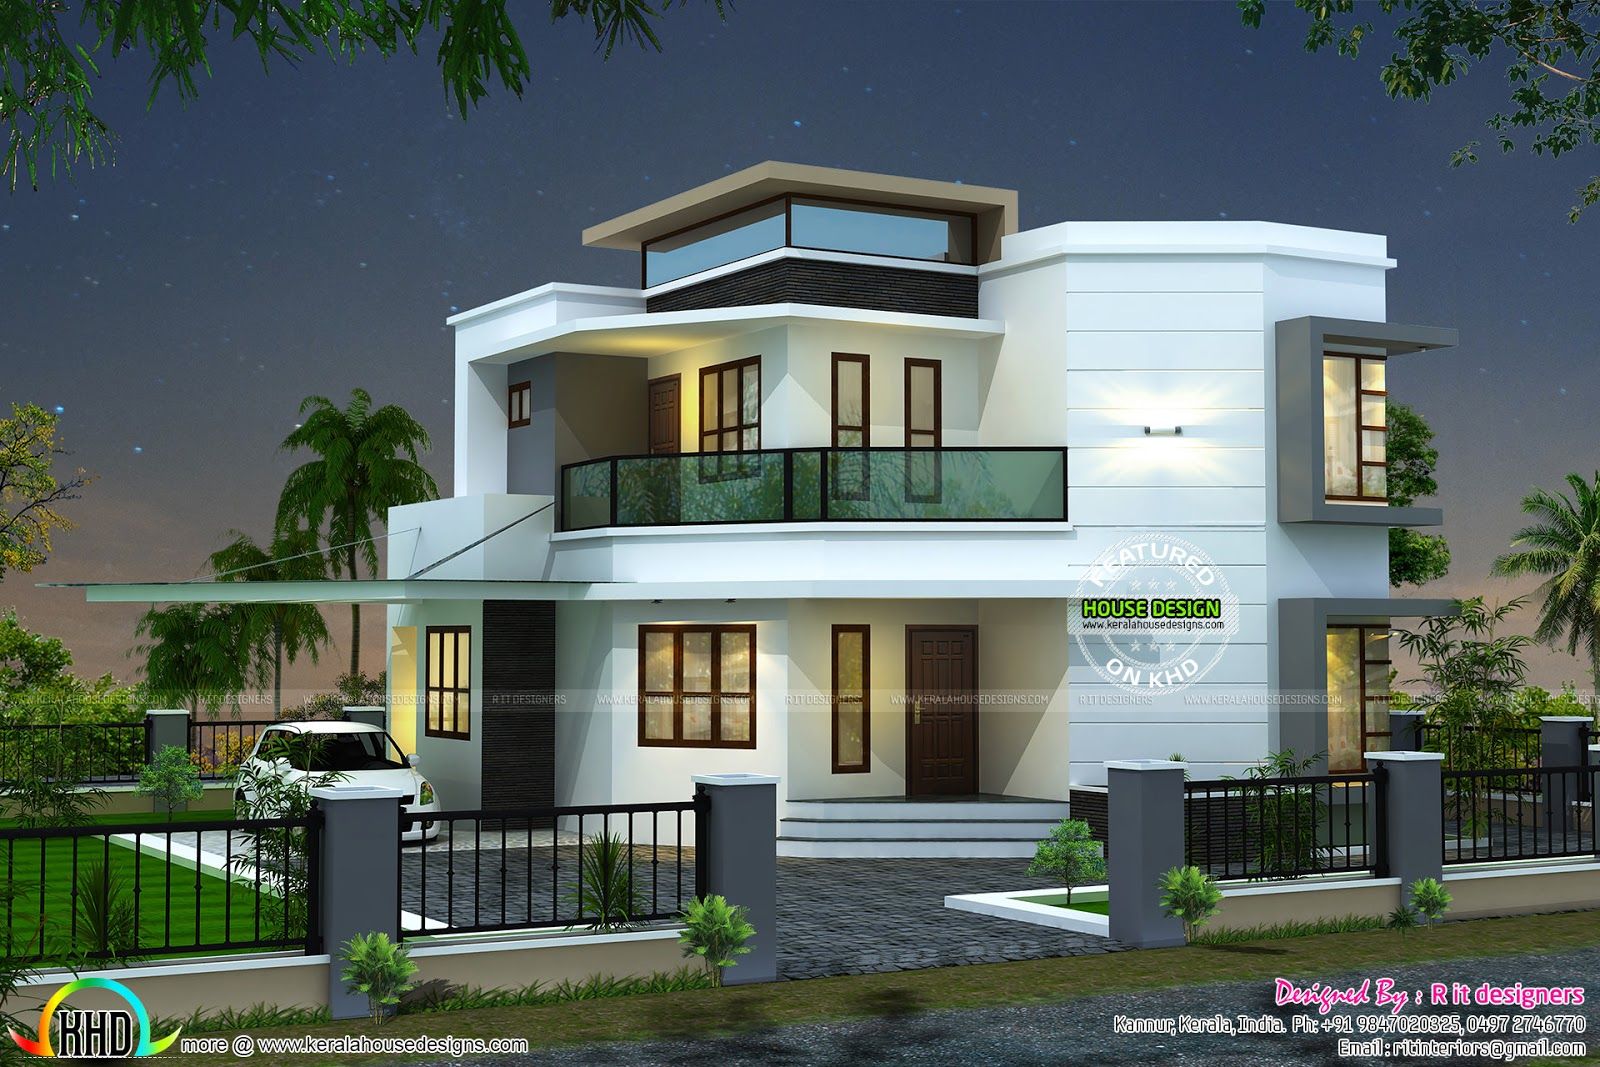 1838 Sq ft Cute Modern House Kerala Home Design And